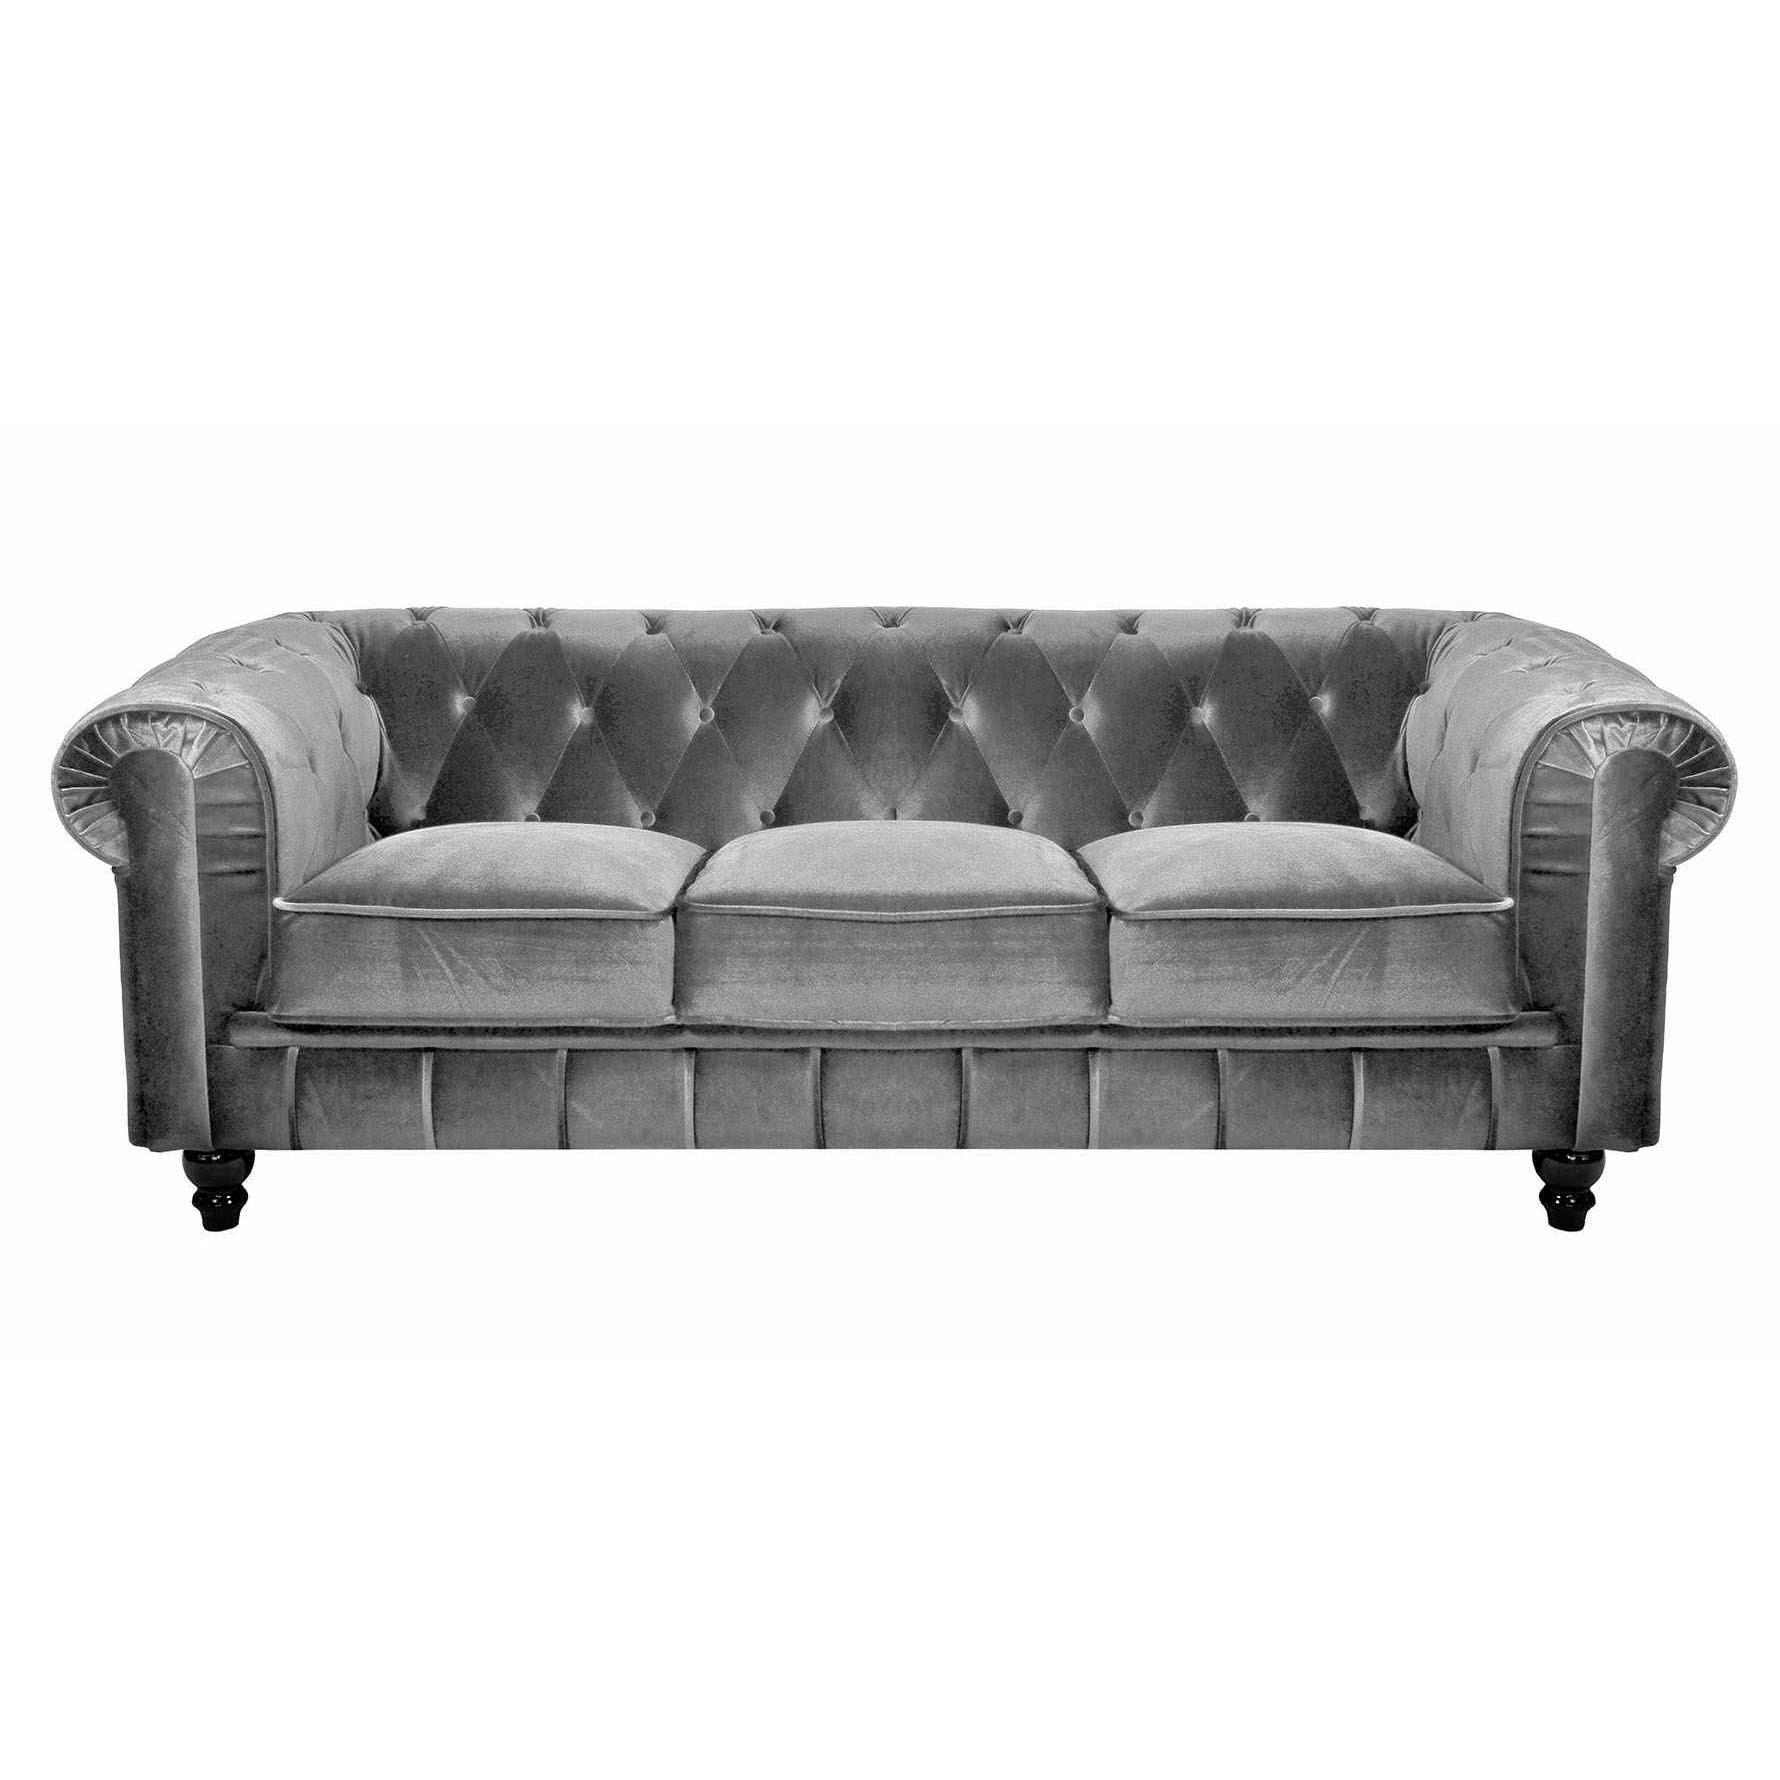 Canape chesterfield places - Canape chesterfield cuir gris ...